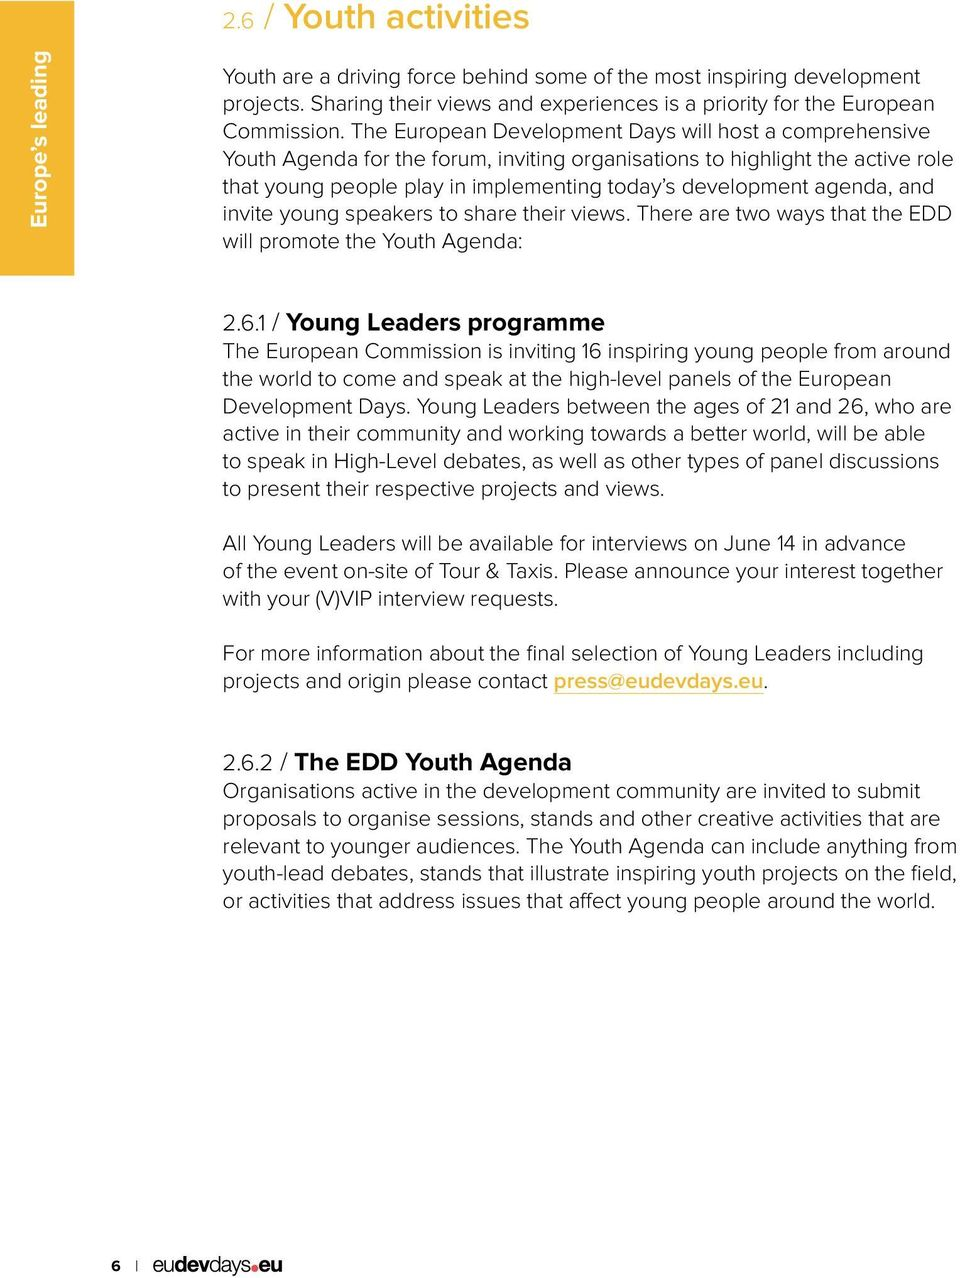 agenda, and invite young speakers to share their views. There are two ways that the EDD will promote the Youth Agenda: 2.6.